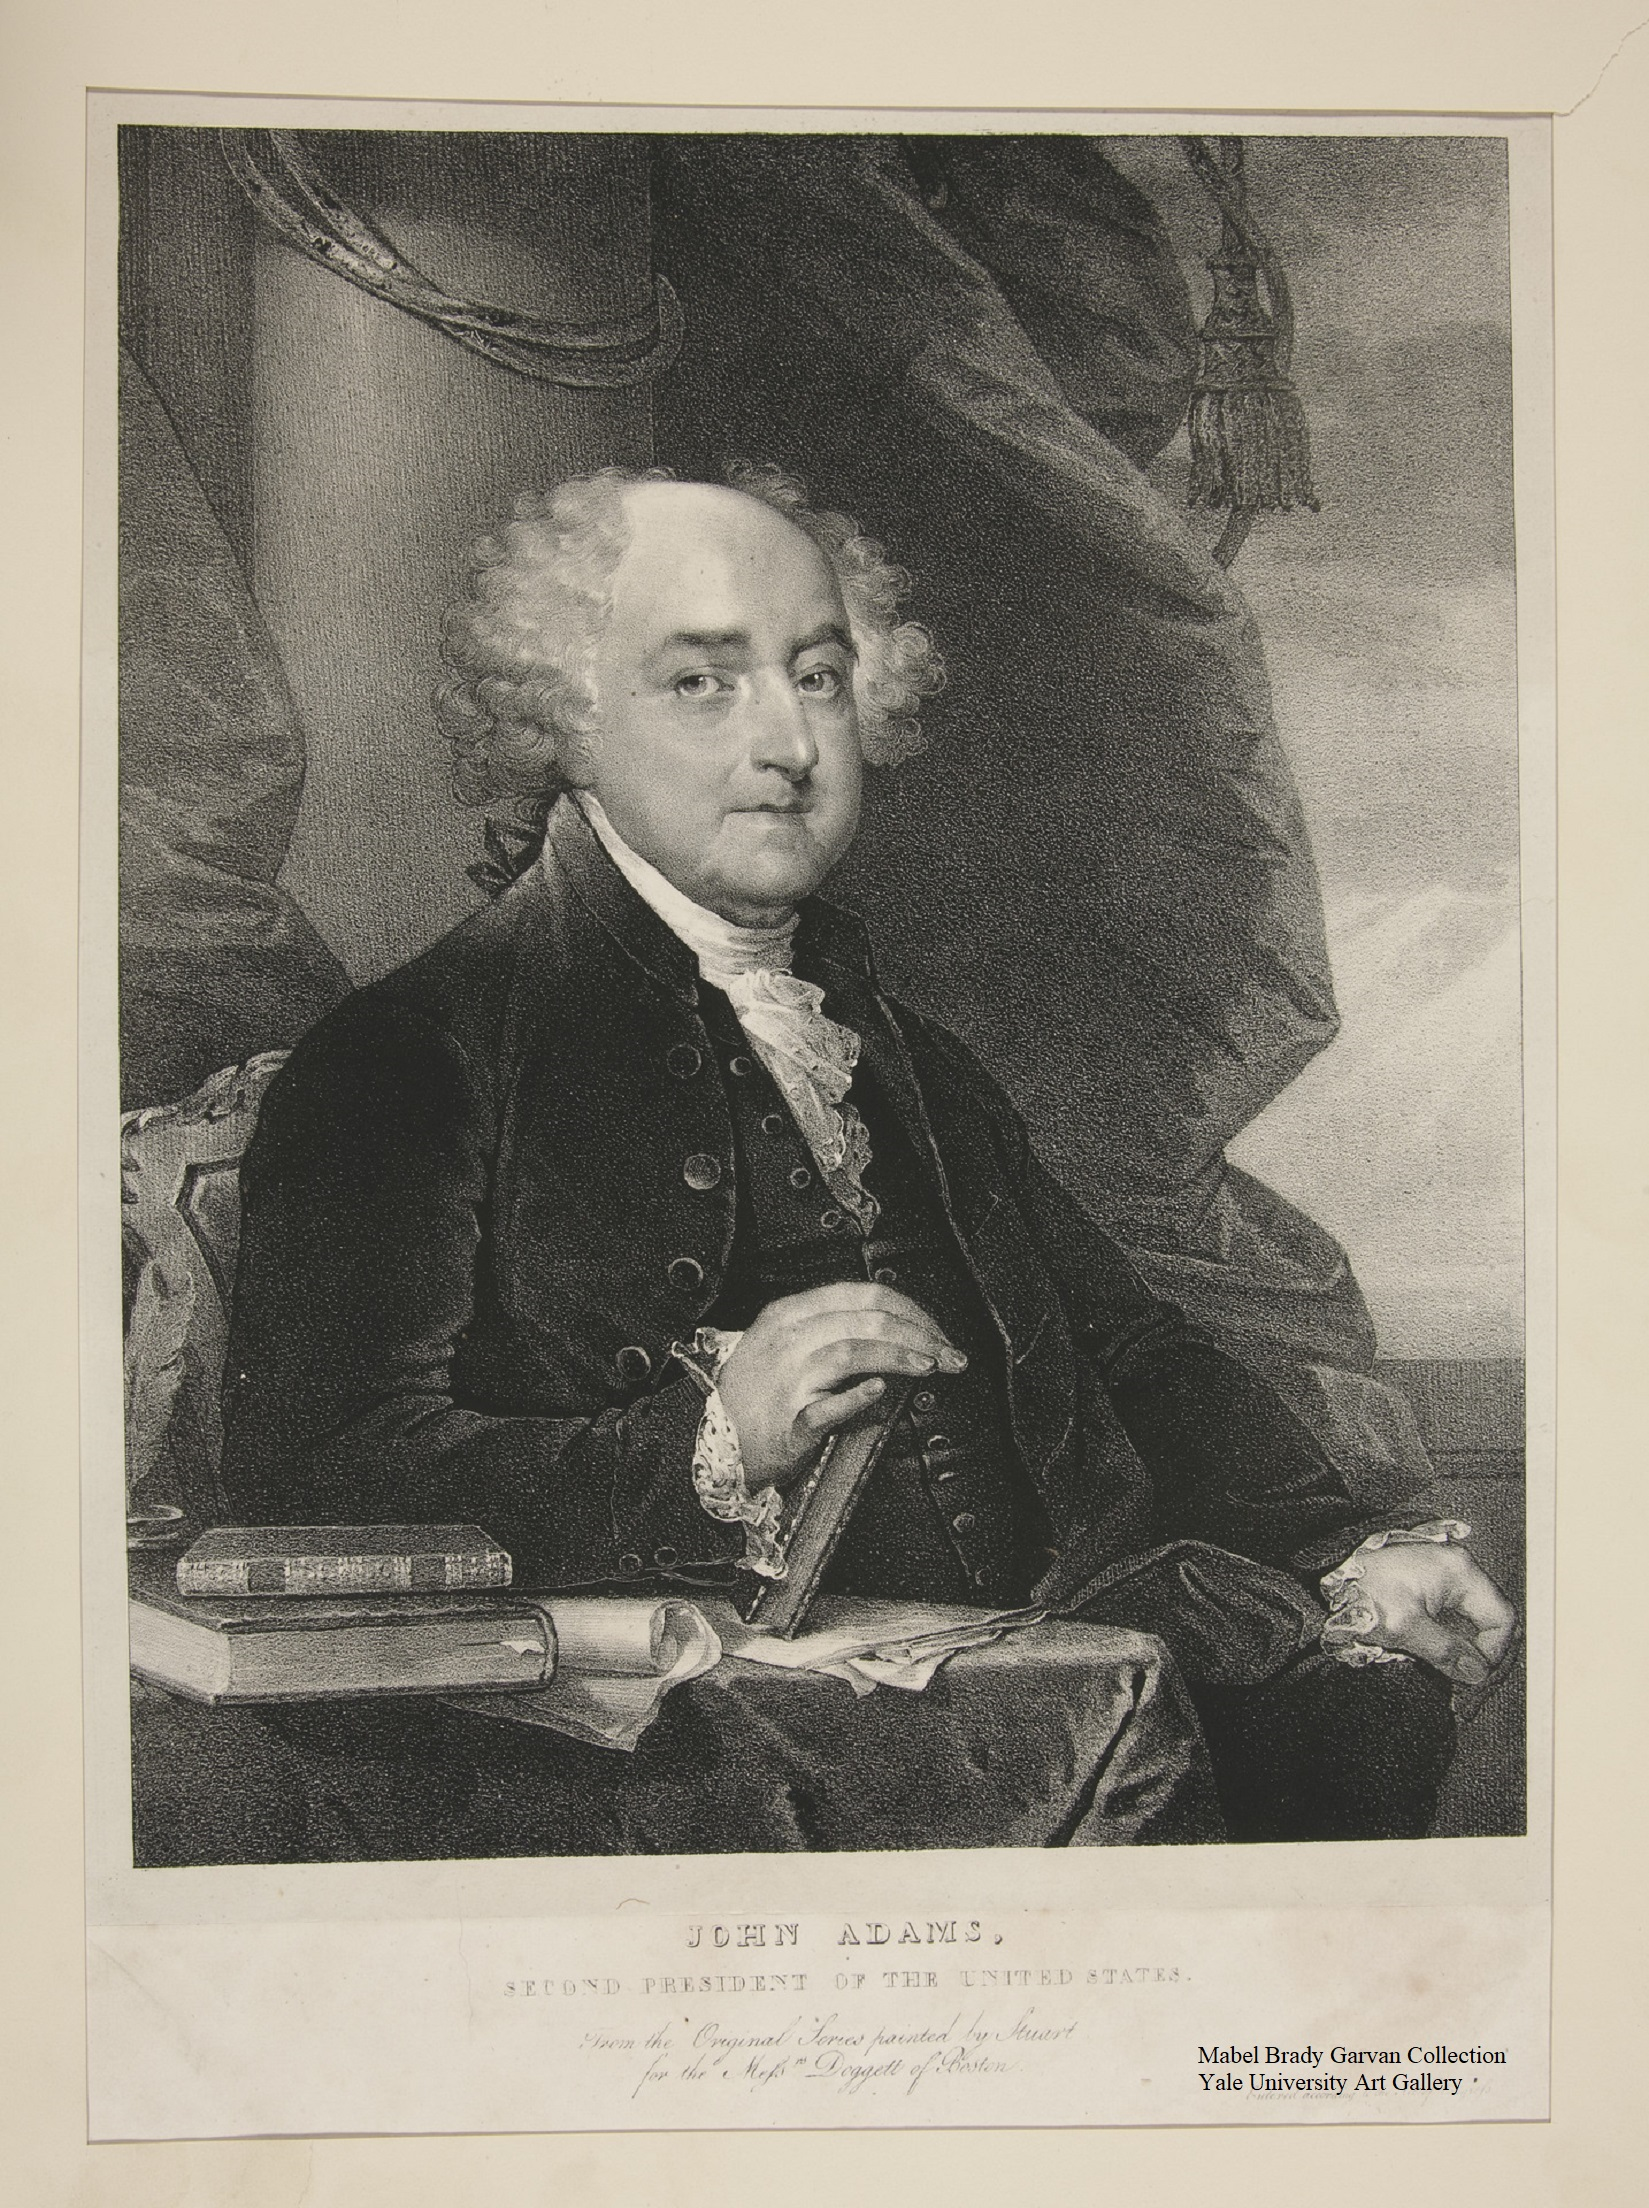 Quotes About George Washington By John Adams: John Adams · George Washington's Mount Vernon